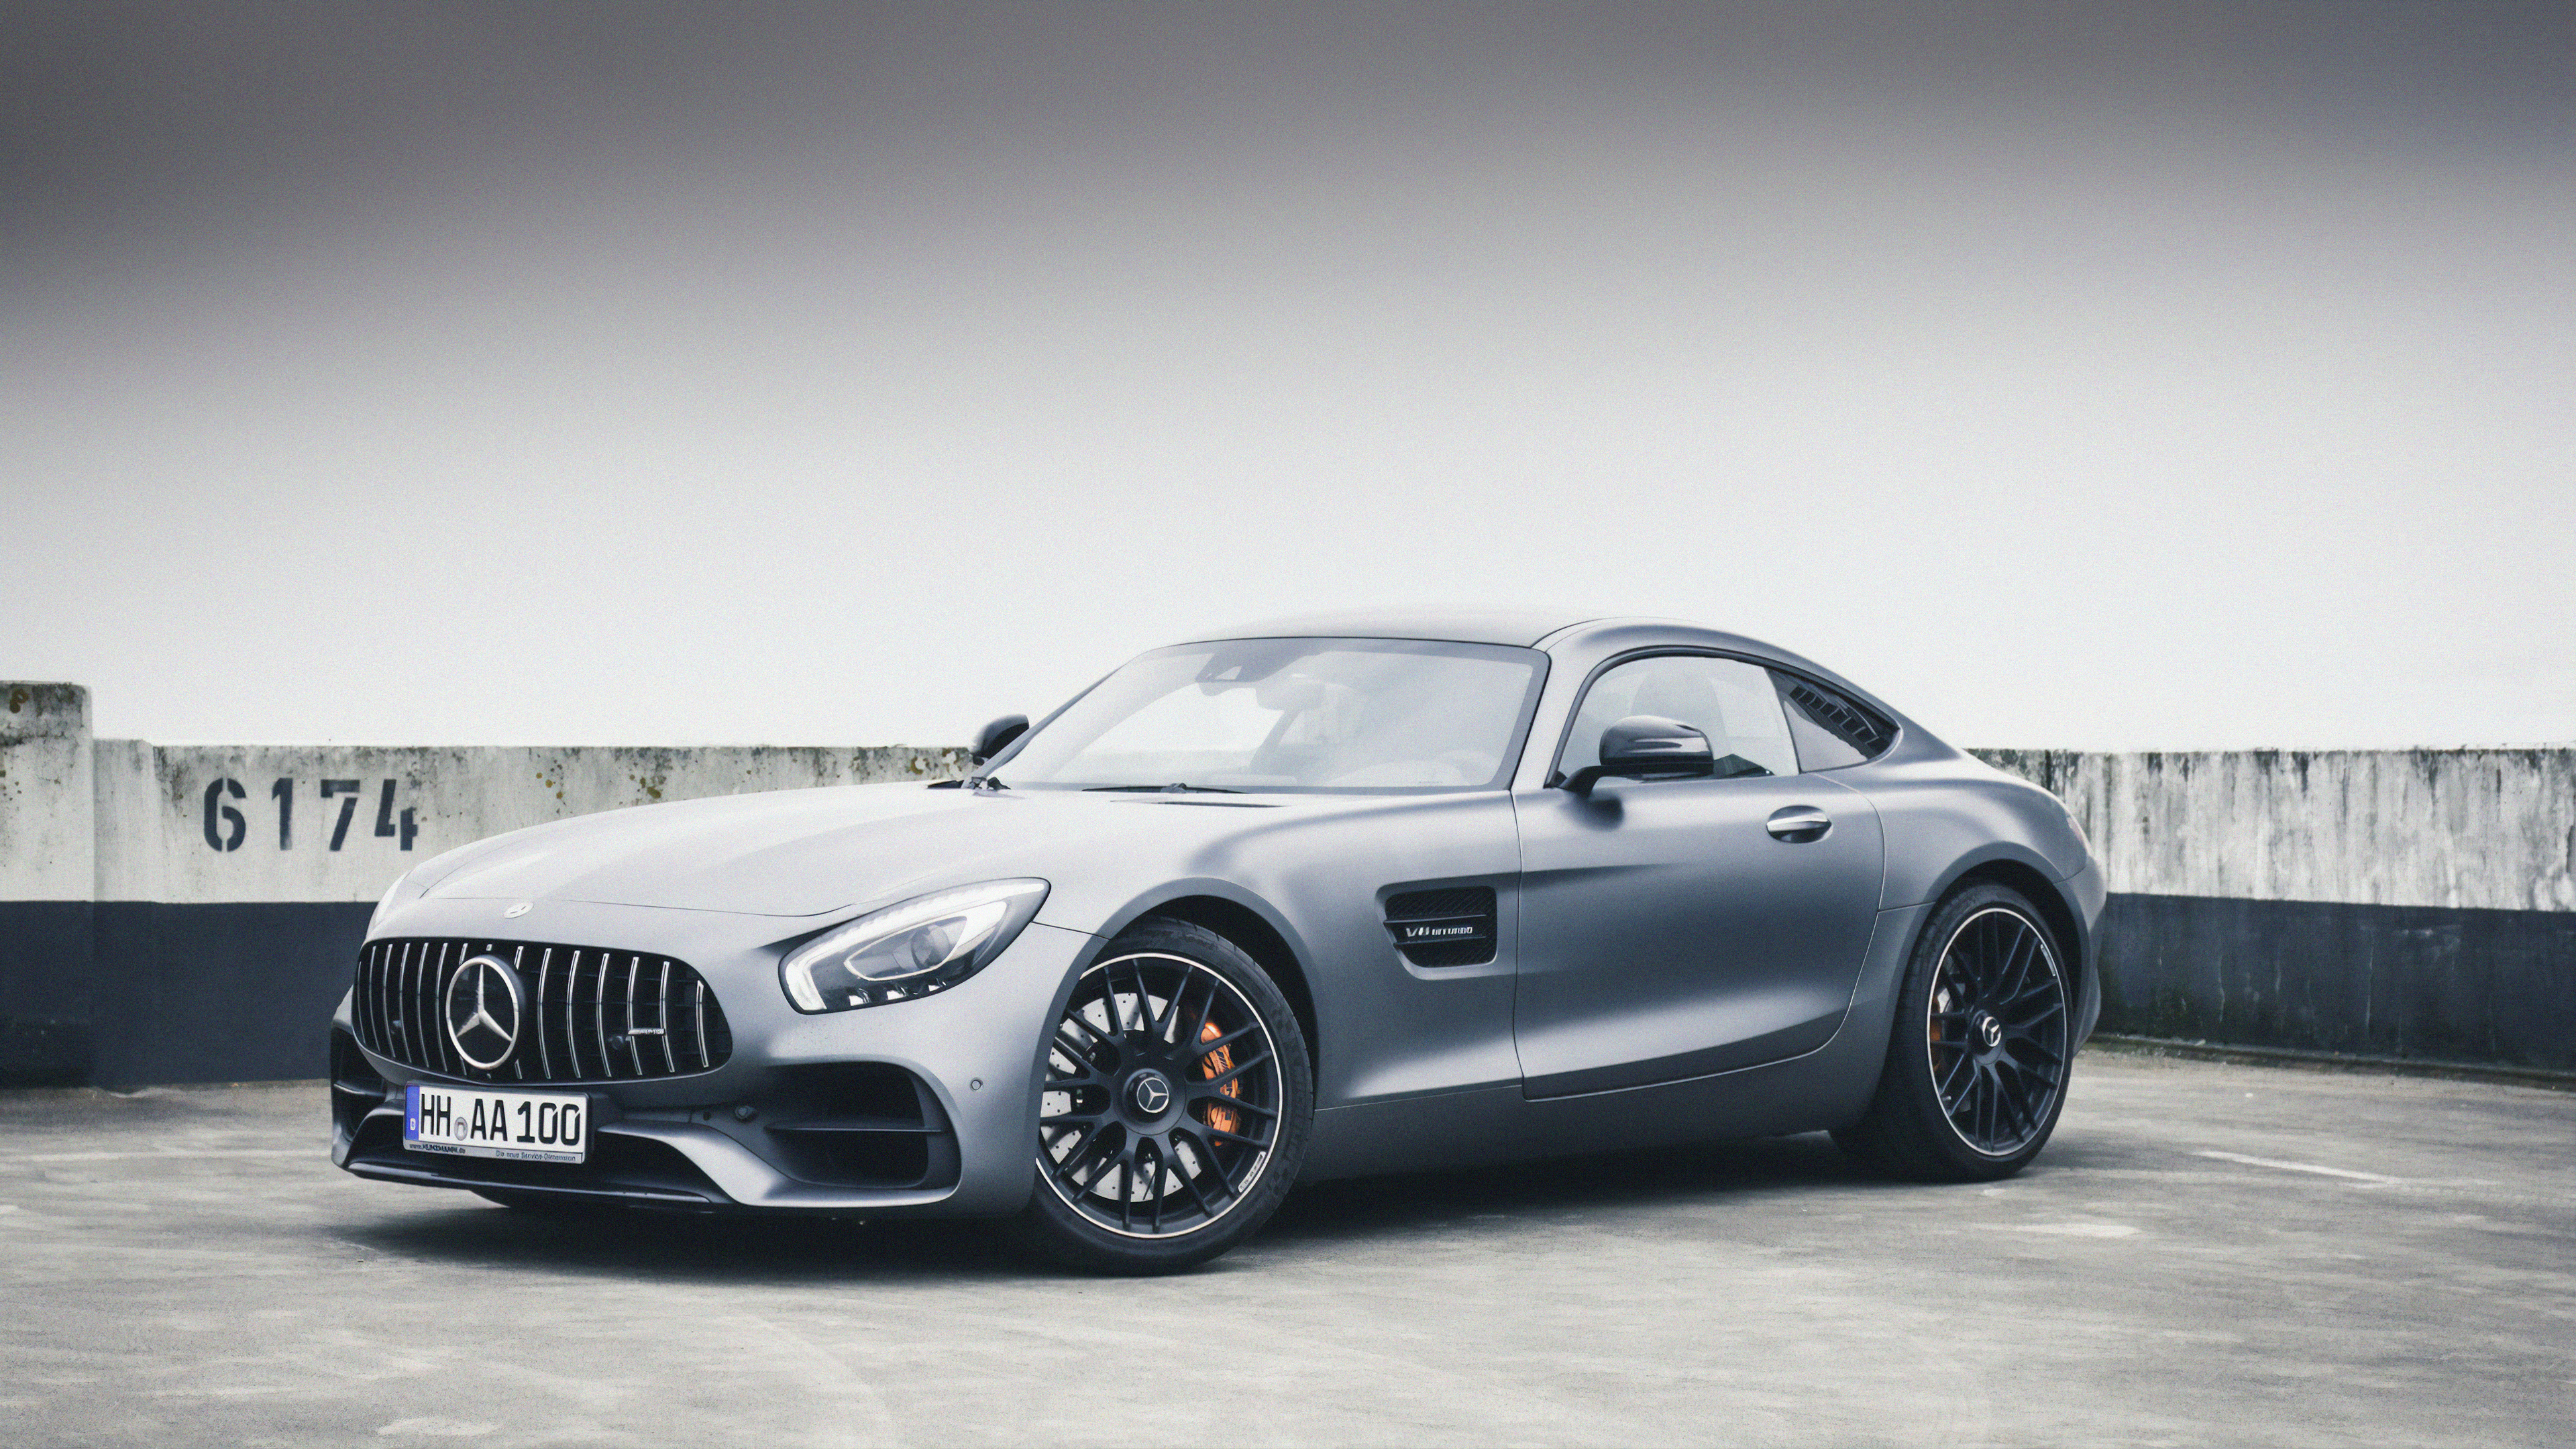 mercedes amg gt s 1565054828 - Mercedes Amg Gt S - mercedes wallpapers, mercedes amg gtr wallpapers, hd-wallpapers, cars wallpapers, behance wallpapers, 4k-wallpapers, 2019 cars wallpapers